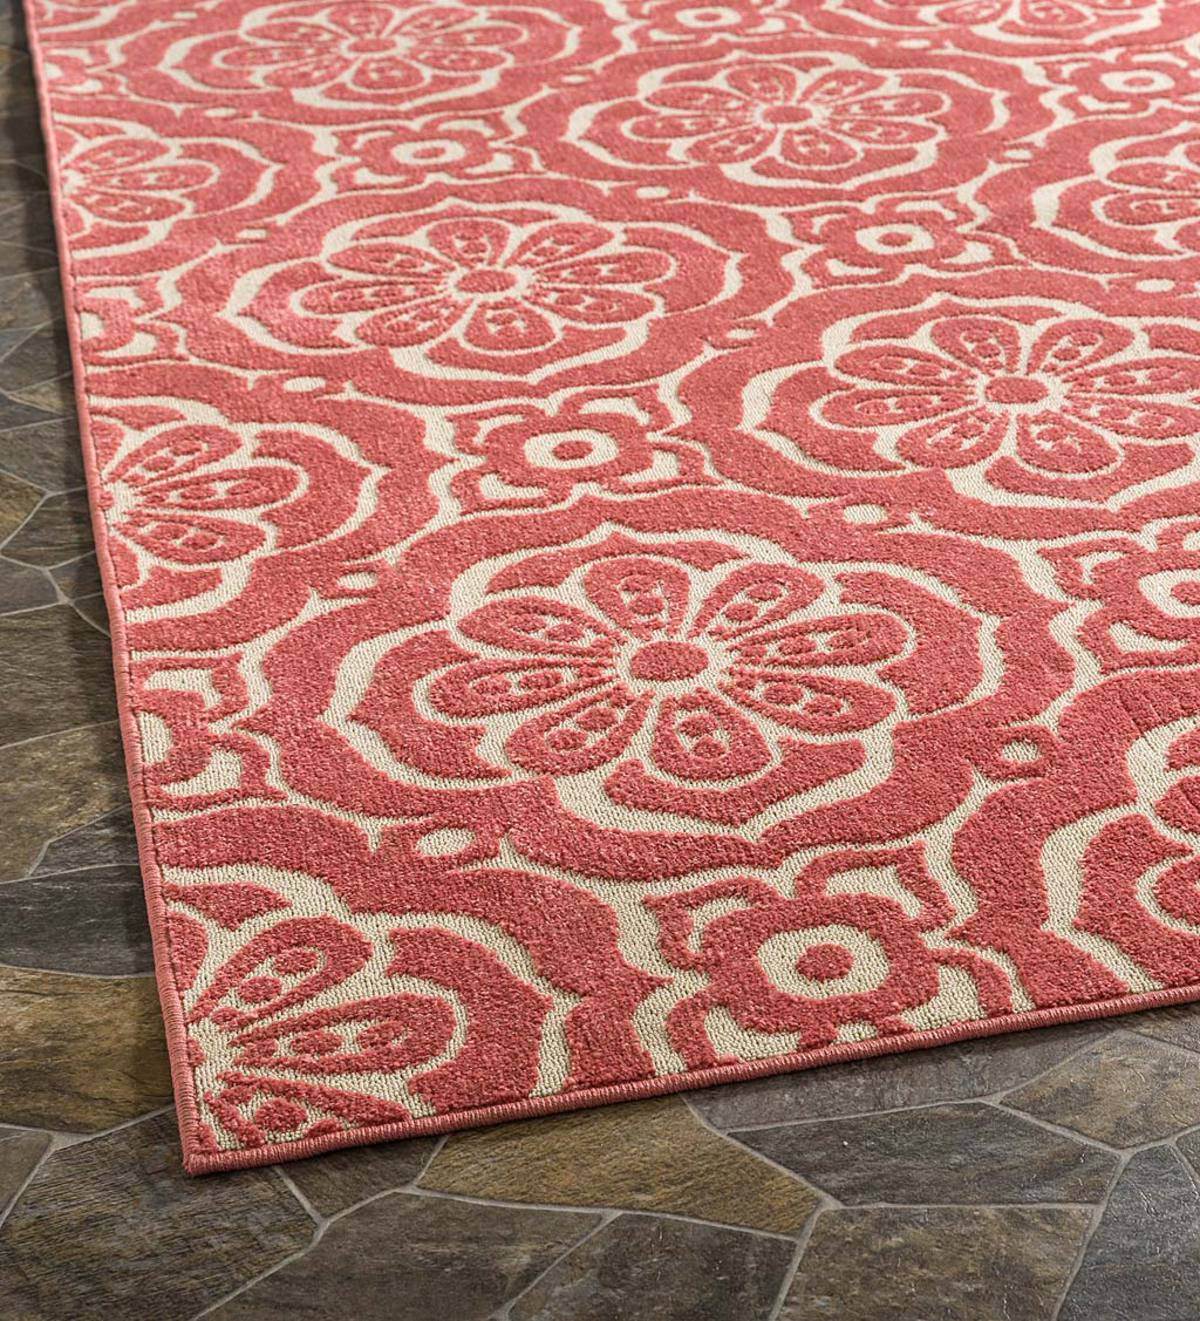 Indoor/Outdoor Clearwater Tile Rug, 5' x 8' - Berry